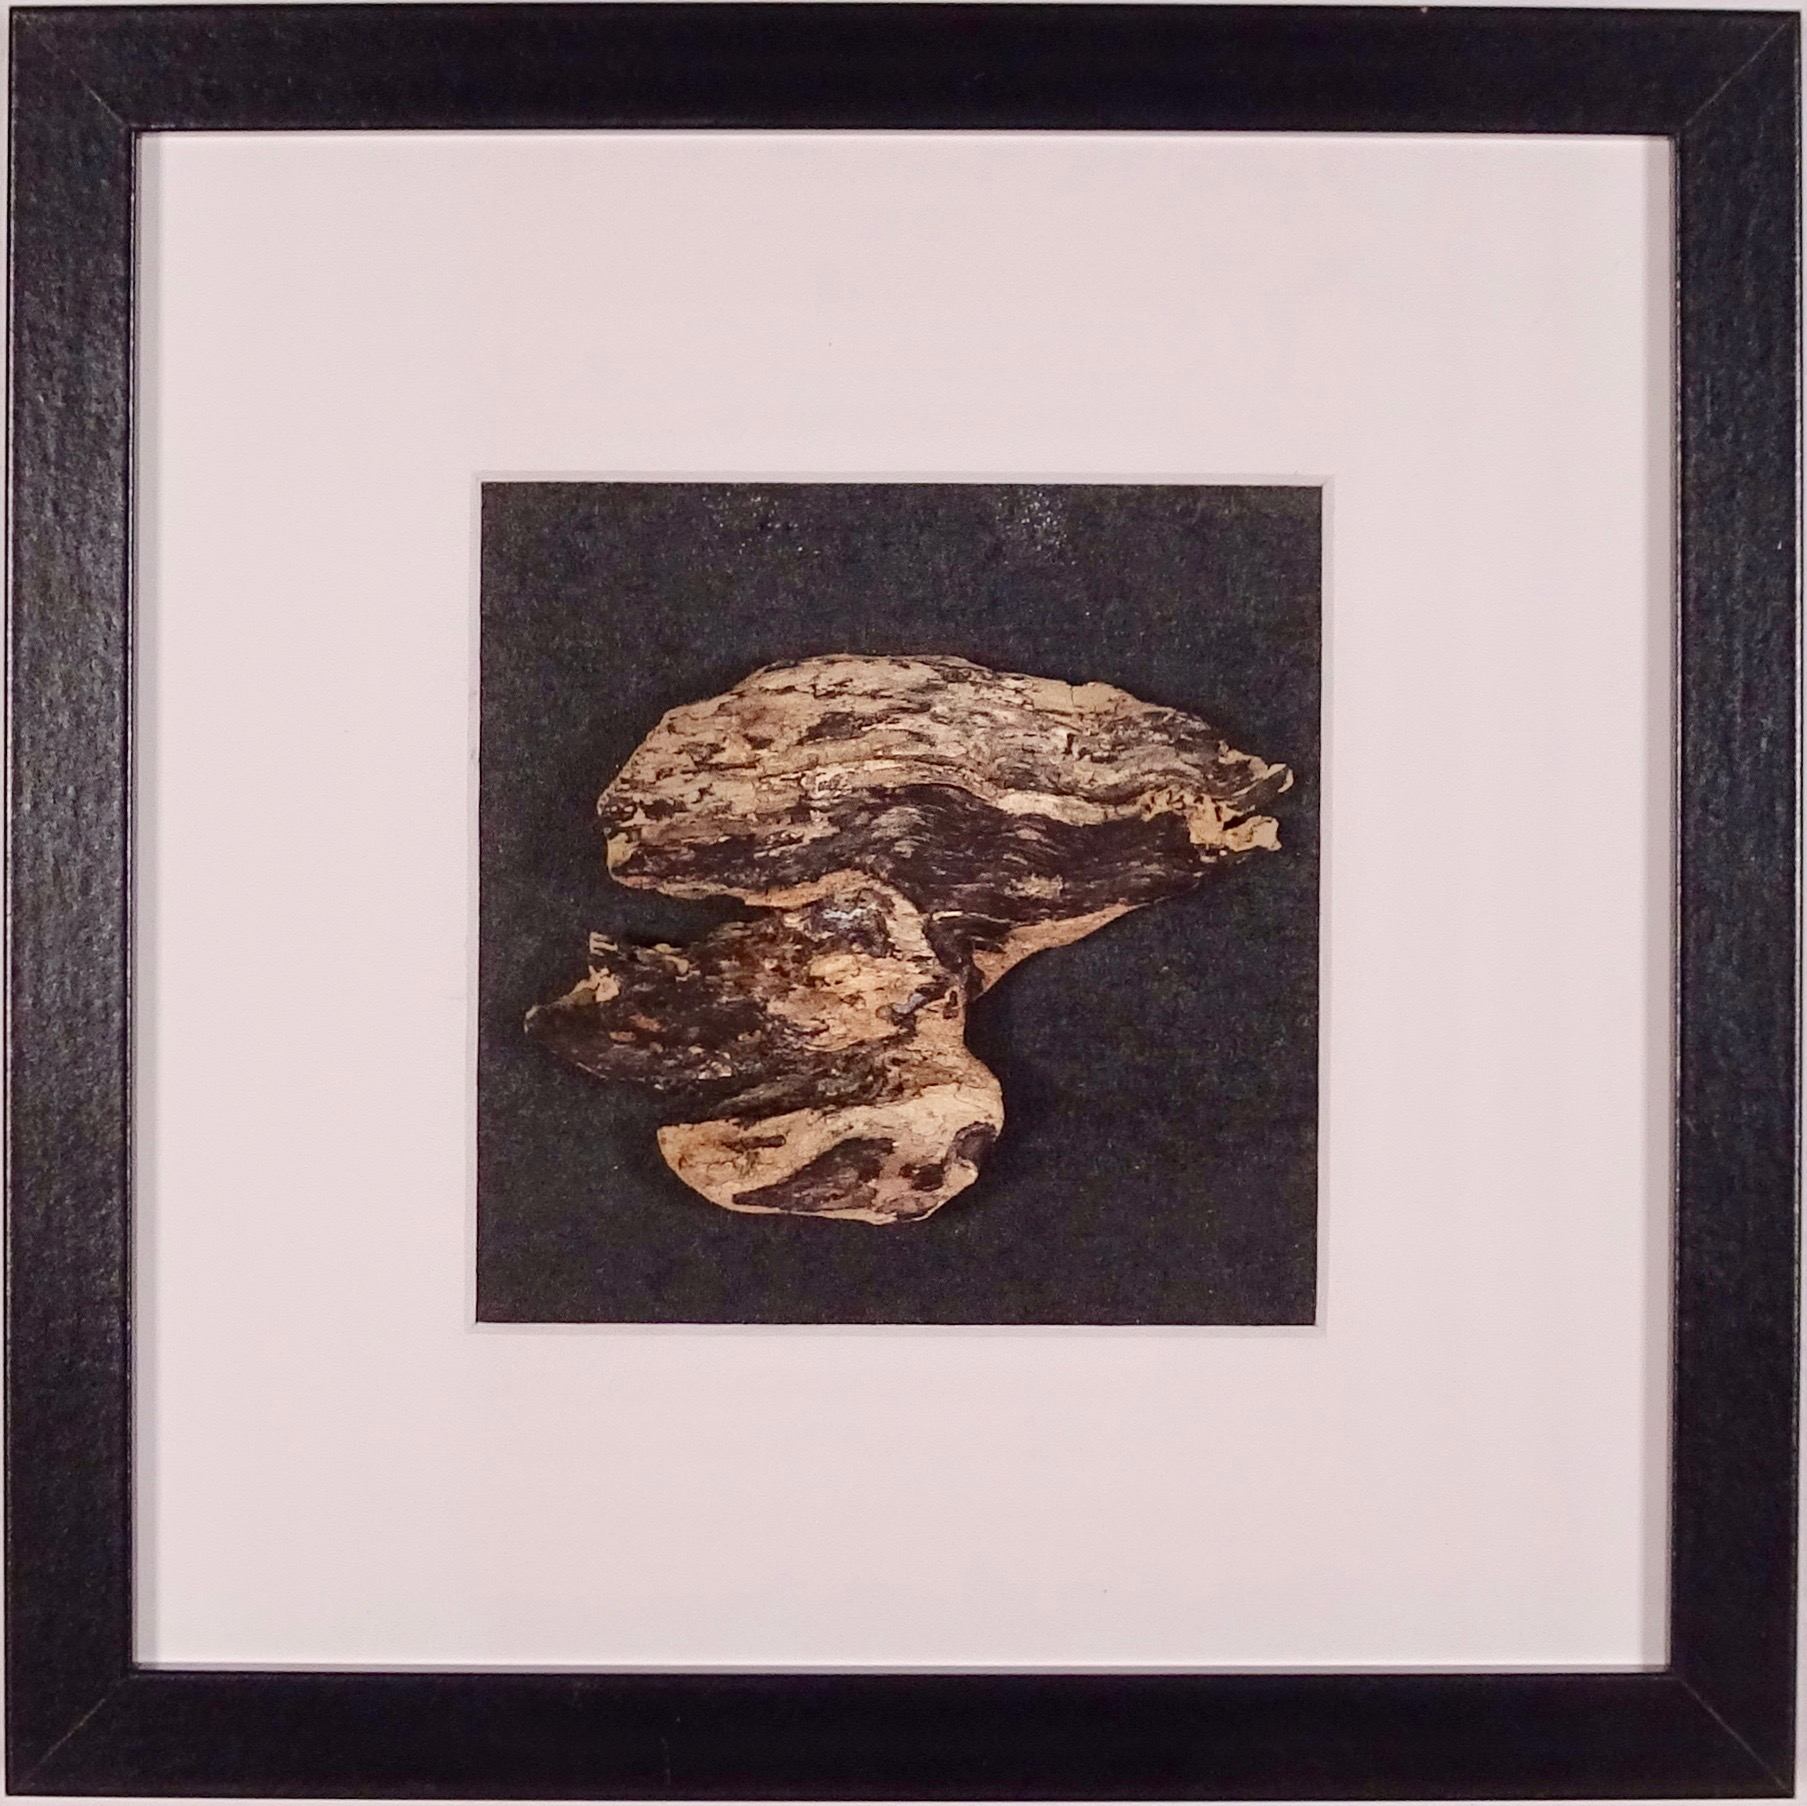 NAUFRAGIO #1 - Beached wood, acrylic, sea water on cardboard, 25x25cmm with passe-partout frame - AVAILABLE